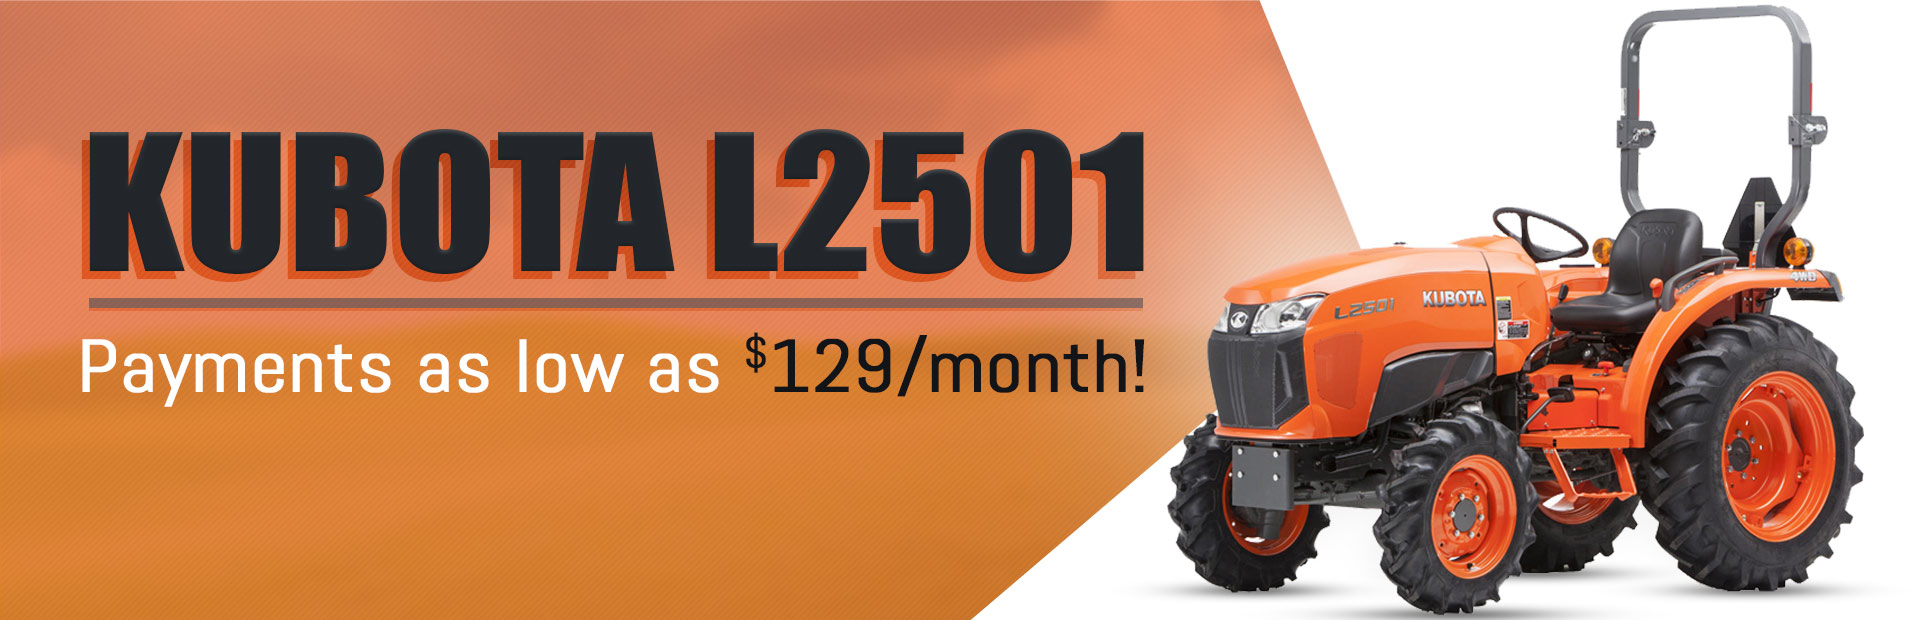 Kubota L2501: Payments as low as $129/month!